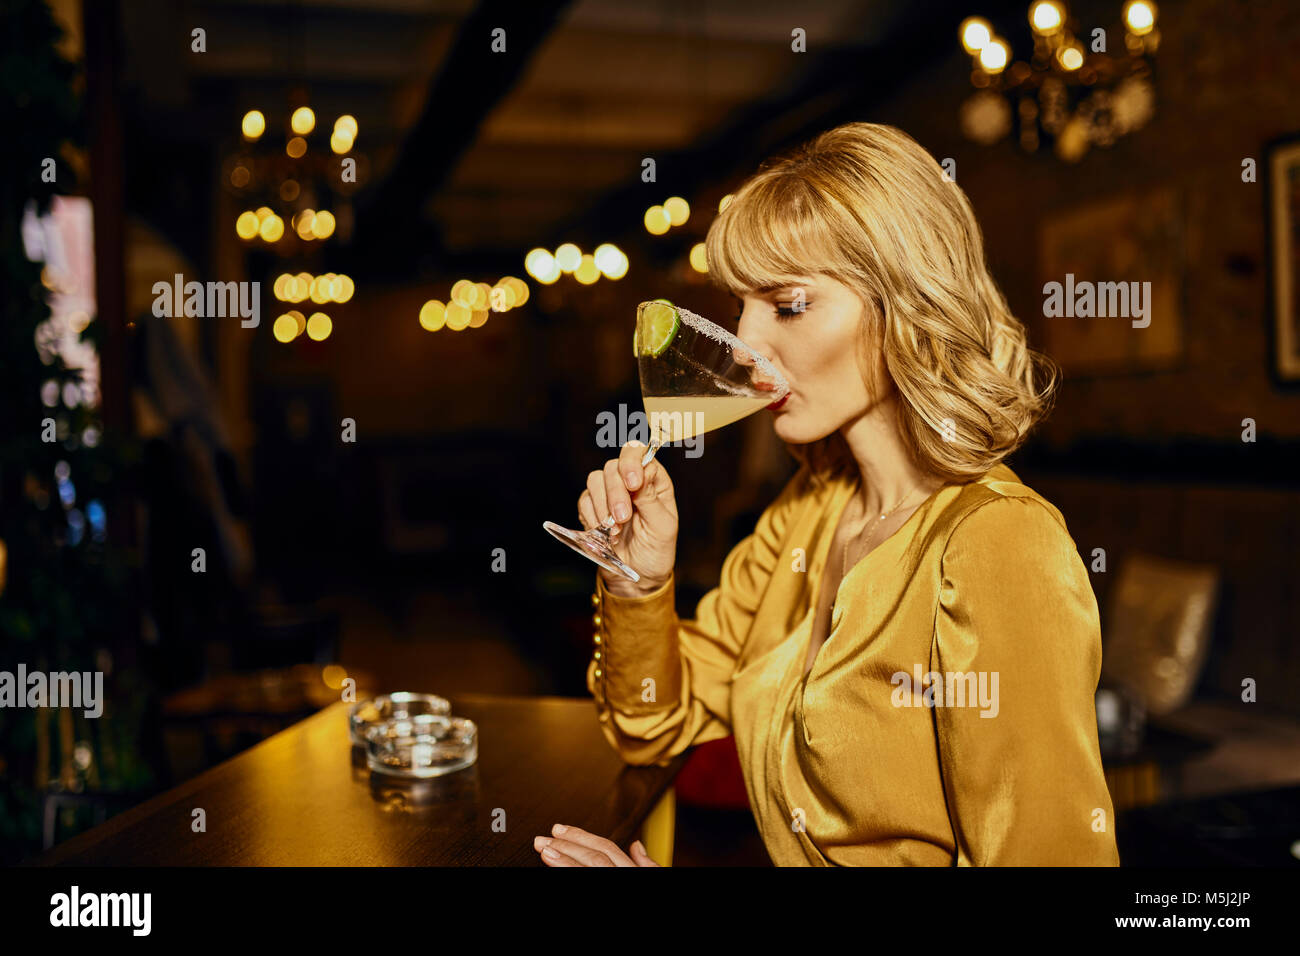 Elegant woman drinking cocktail in a bar - Stock Image